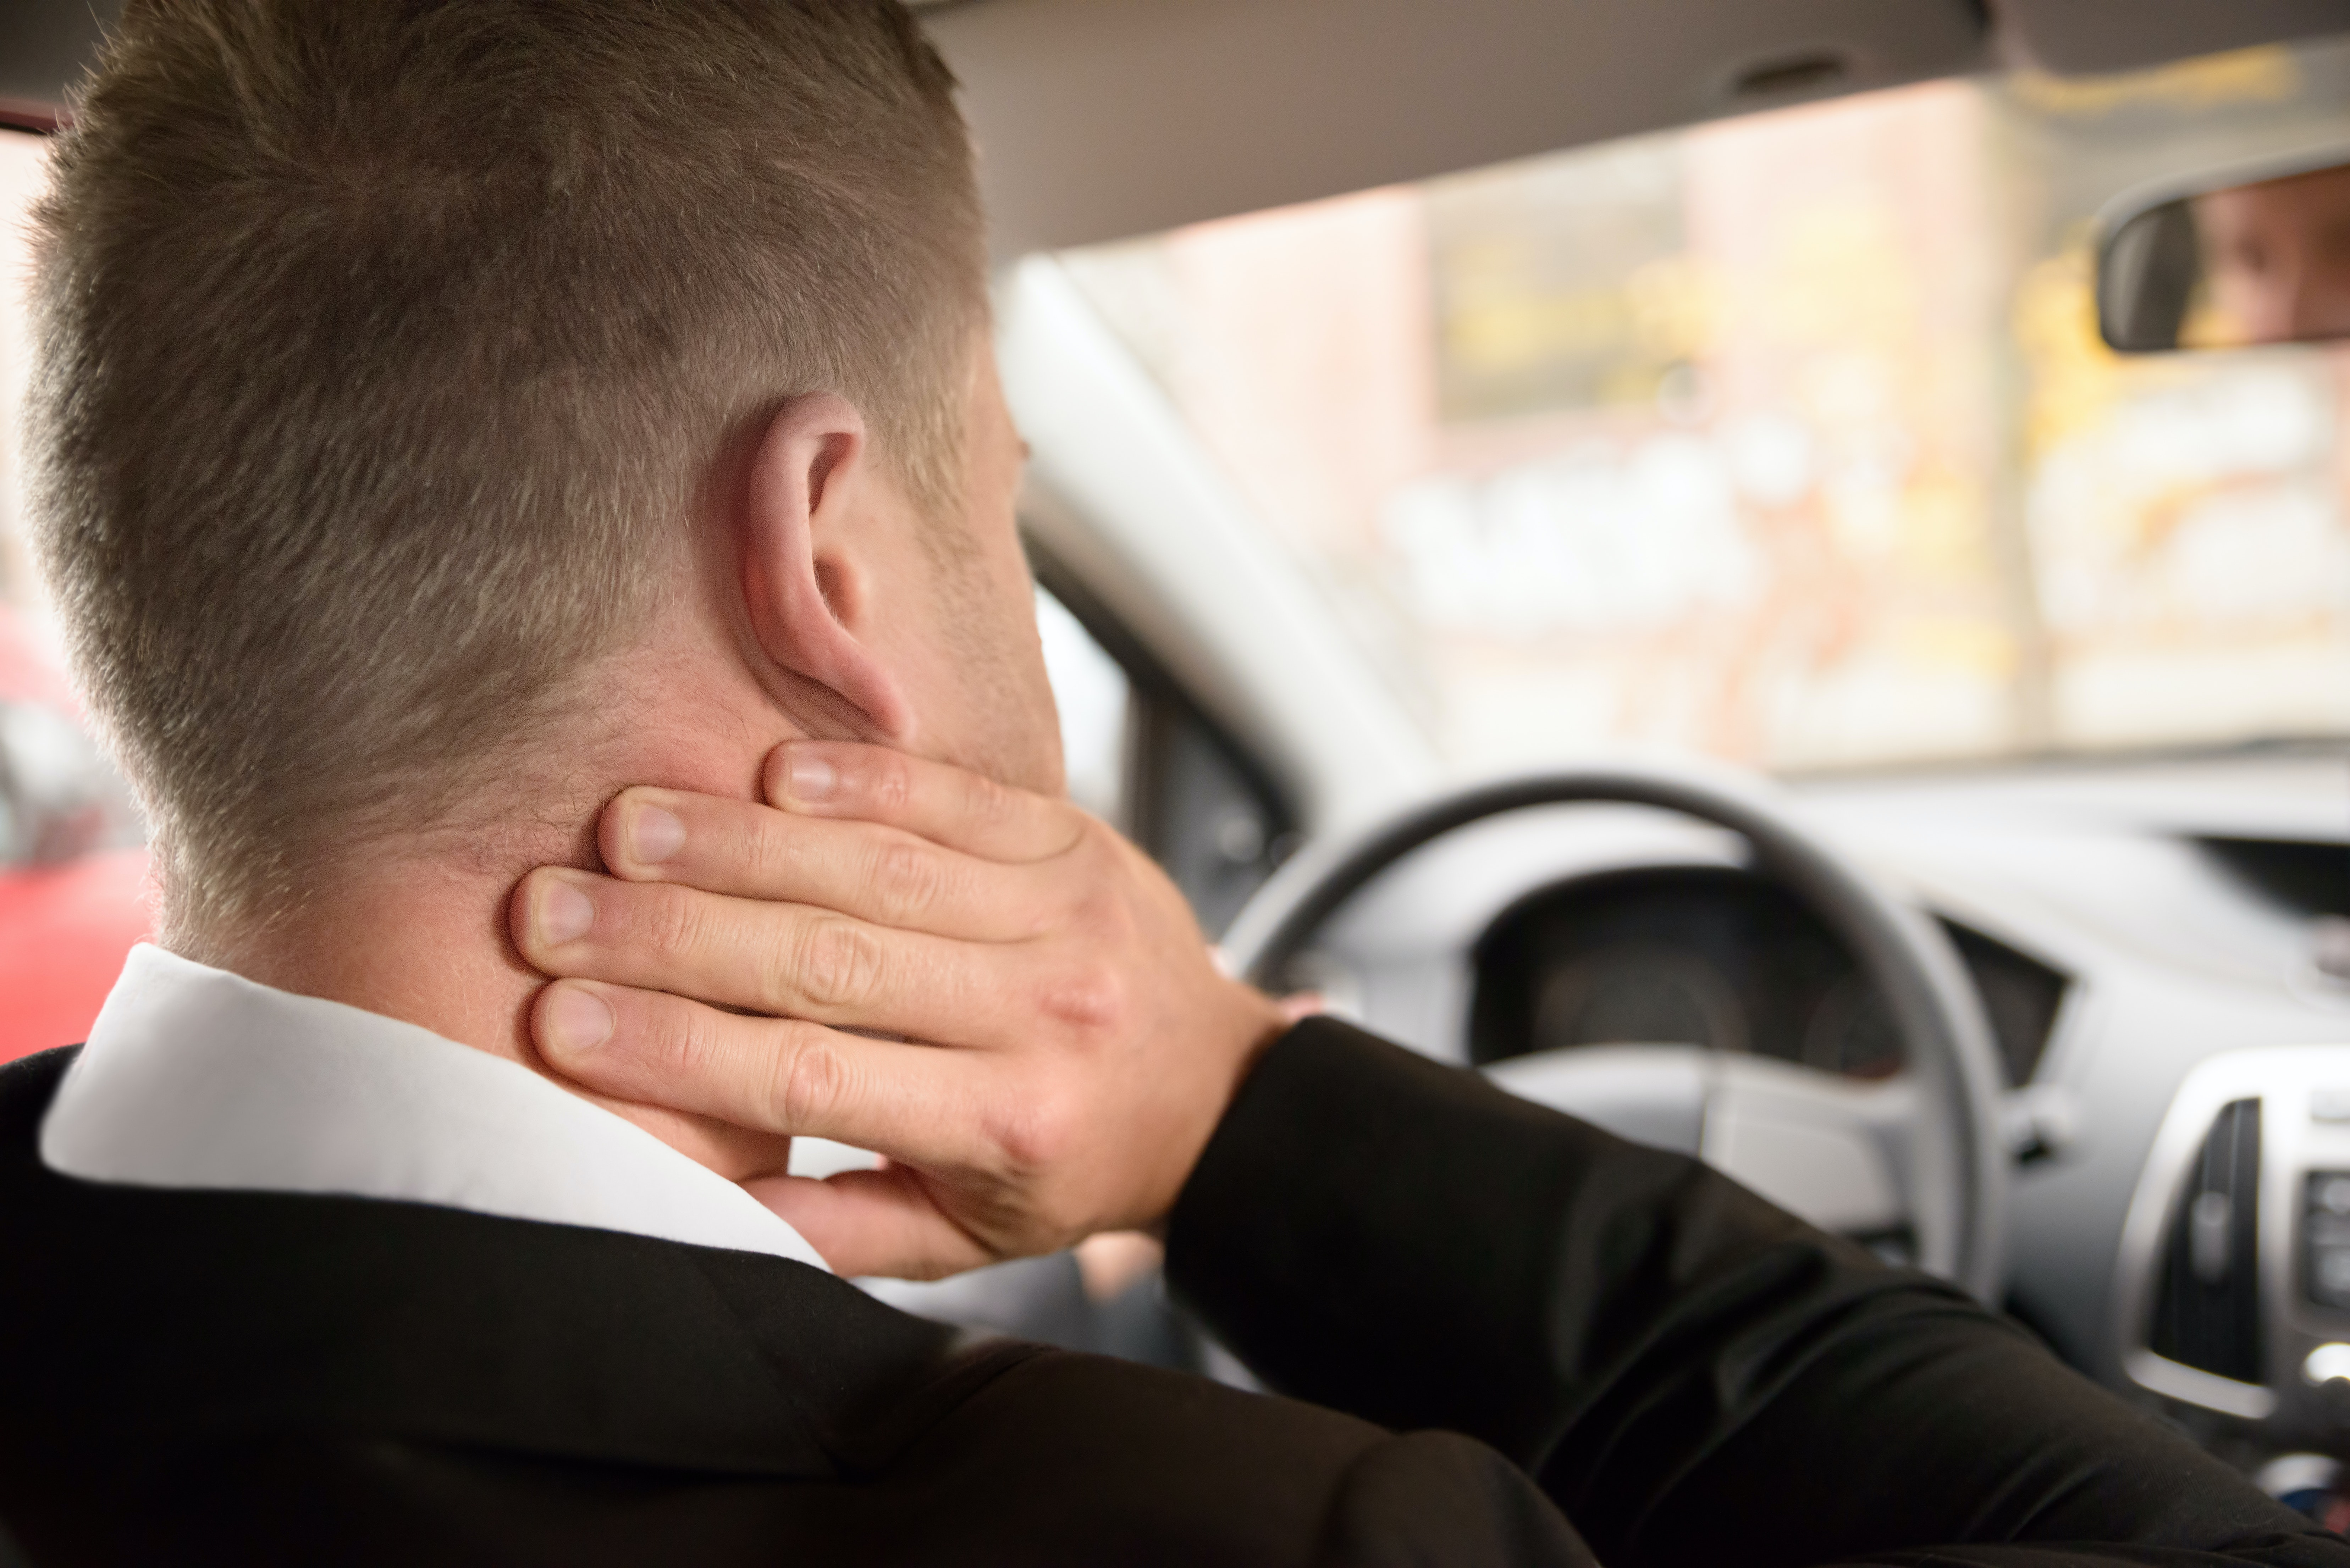 An image depicting a person suffering from skin-colored neck bump symptoms